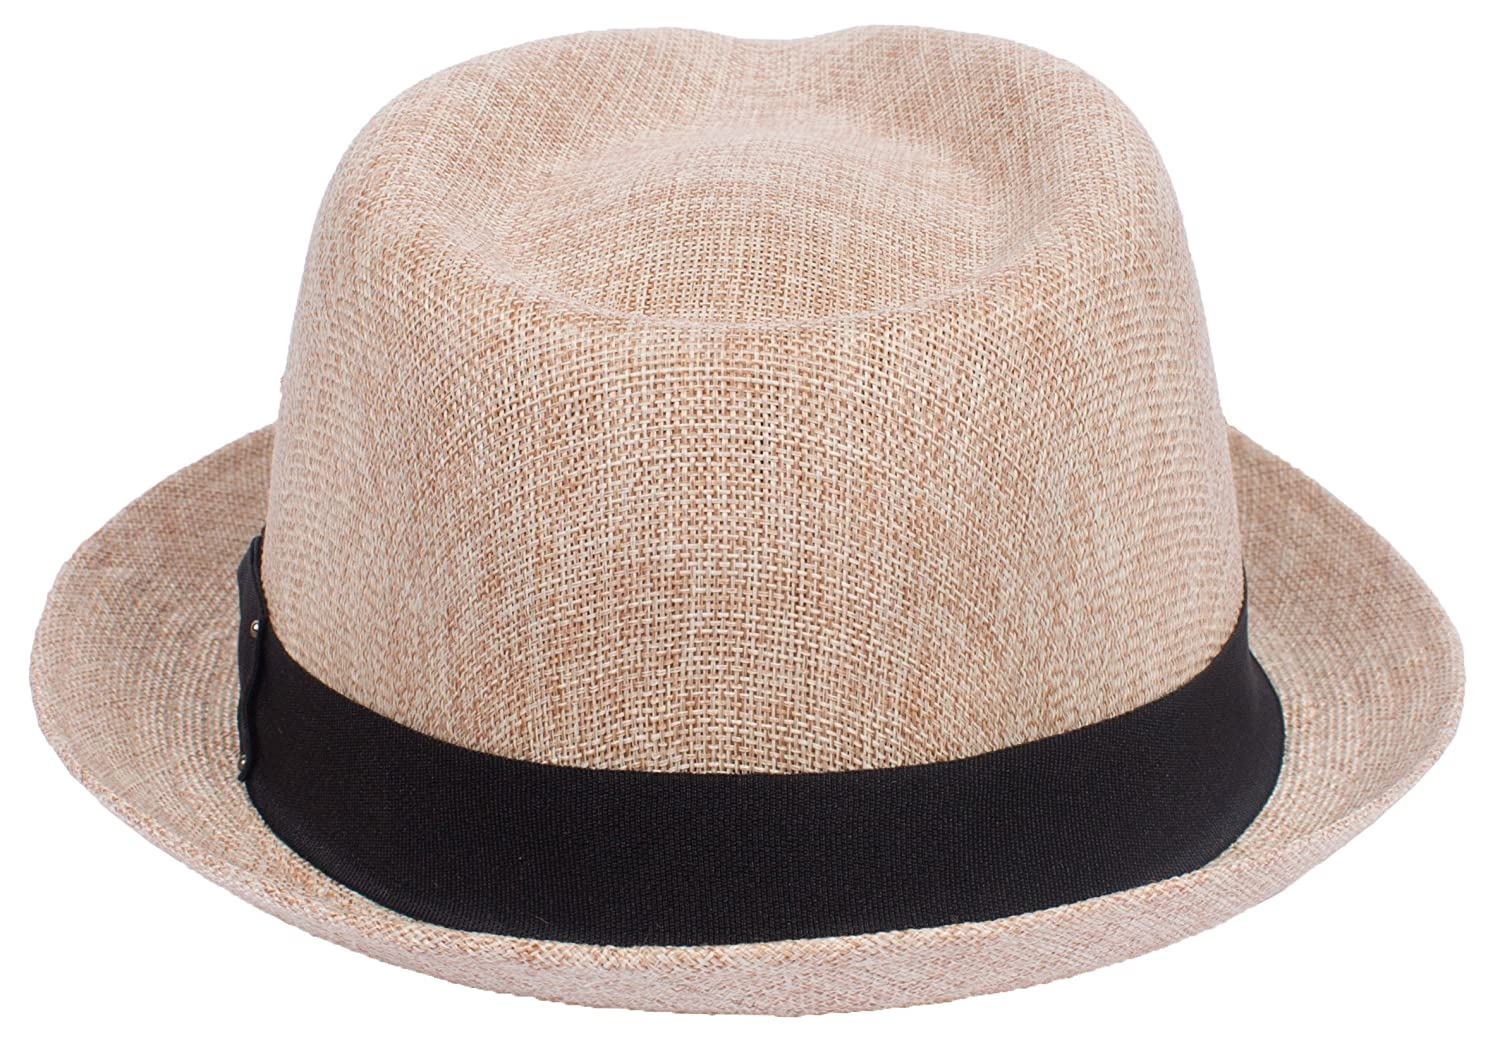 DRY77 Porkpie Pork Pie Fedora Hat Trilby Cuban Cap Linen Cotton Up Short  Brim at Amazon Men s Clothing store  6bd132a3af6